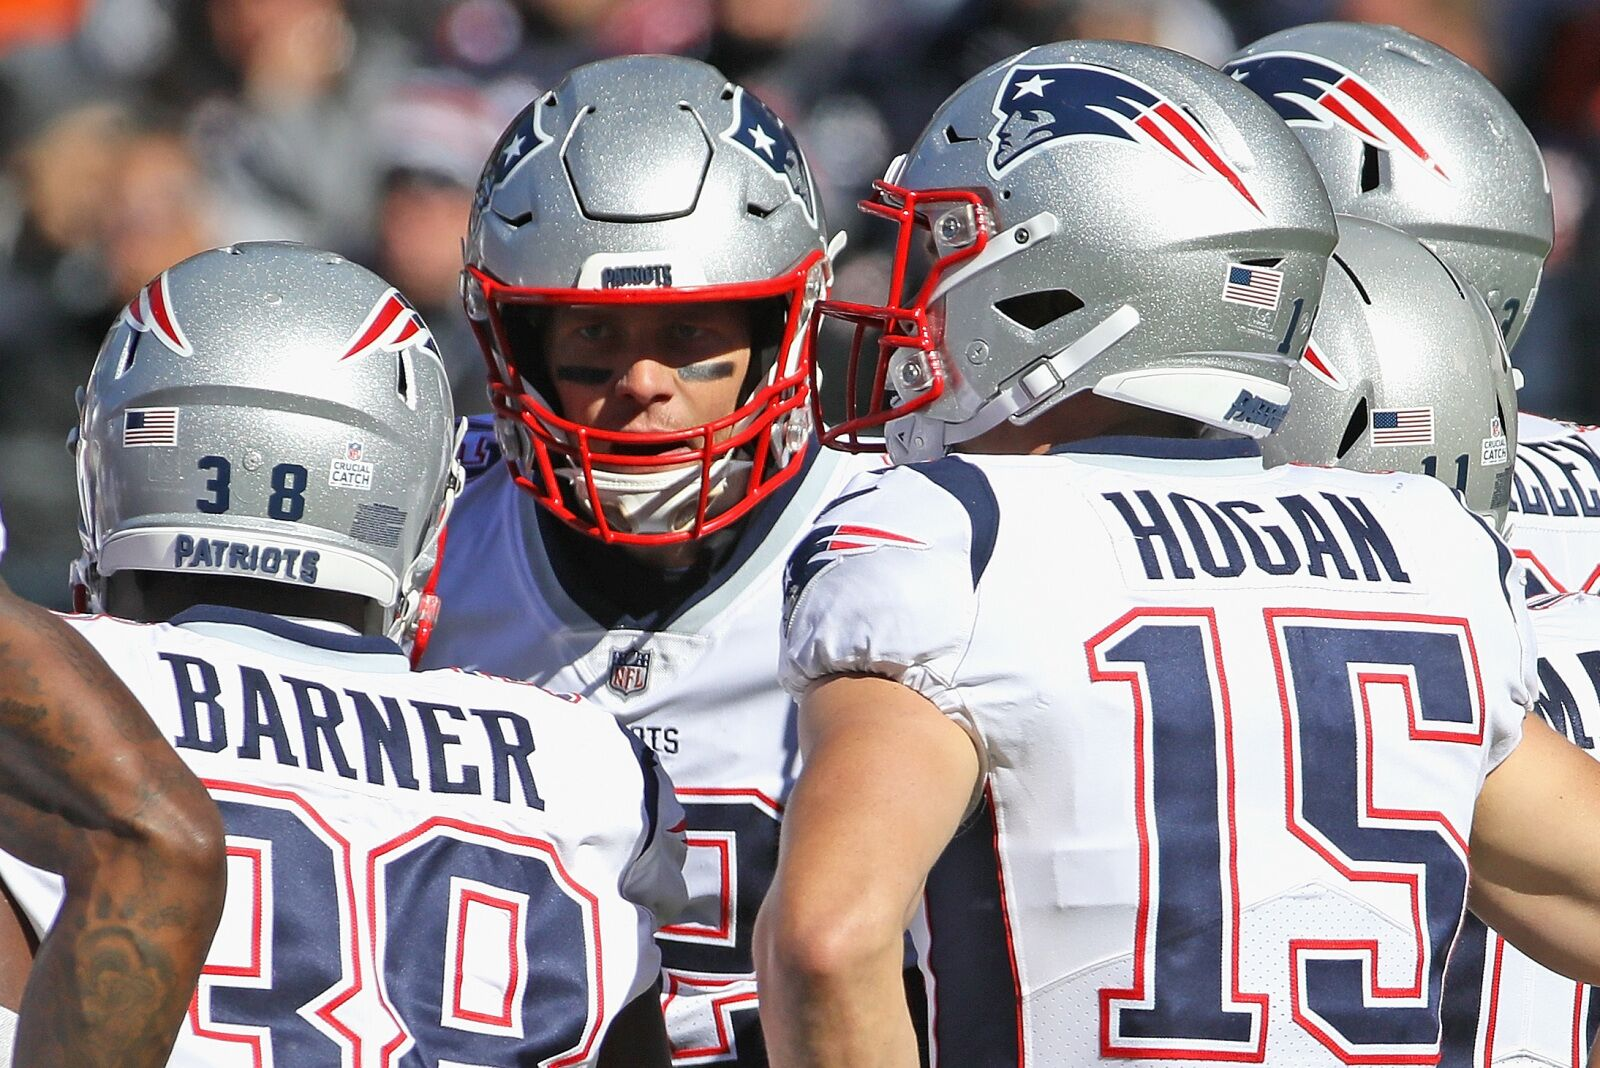 New England Patriots shockingly drop in ESPN NFL Power Rankings